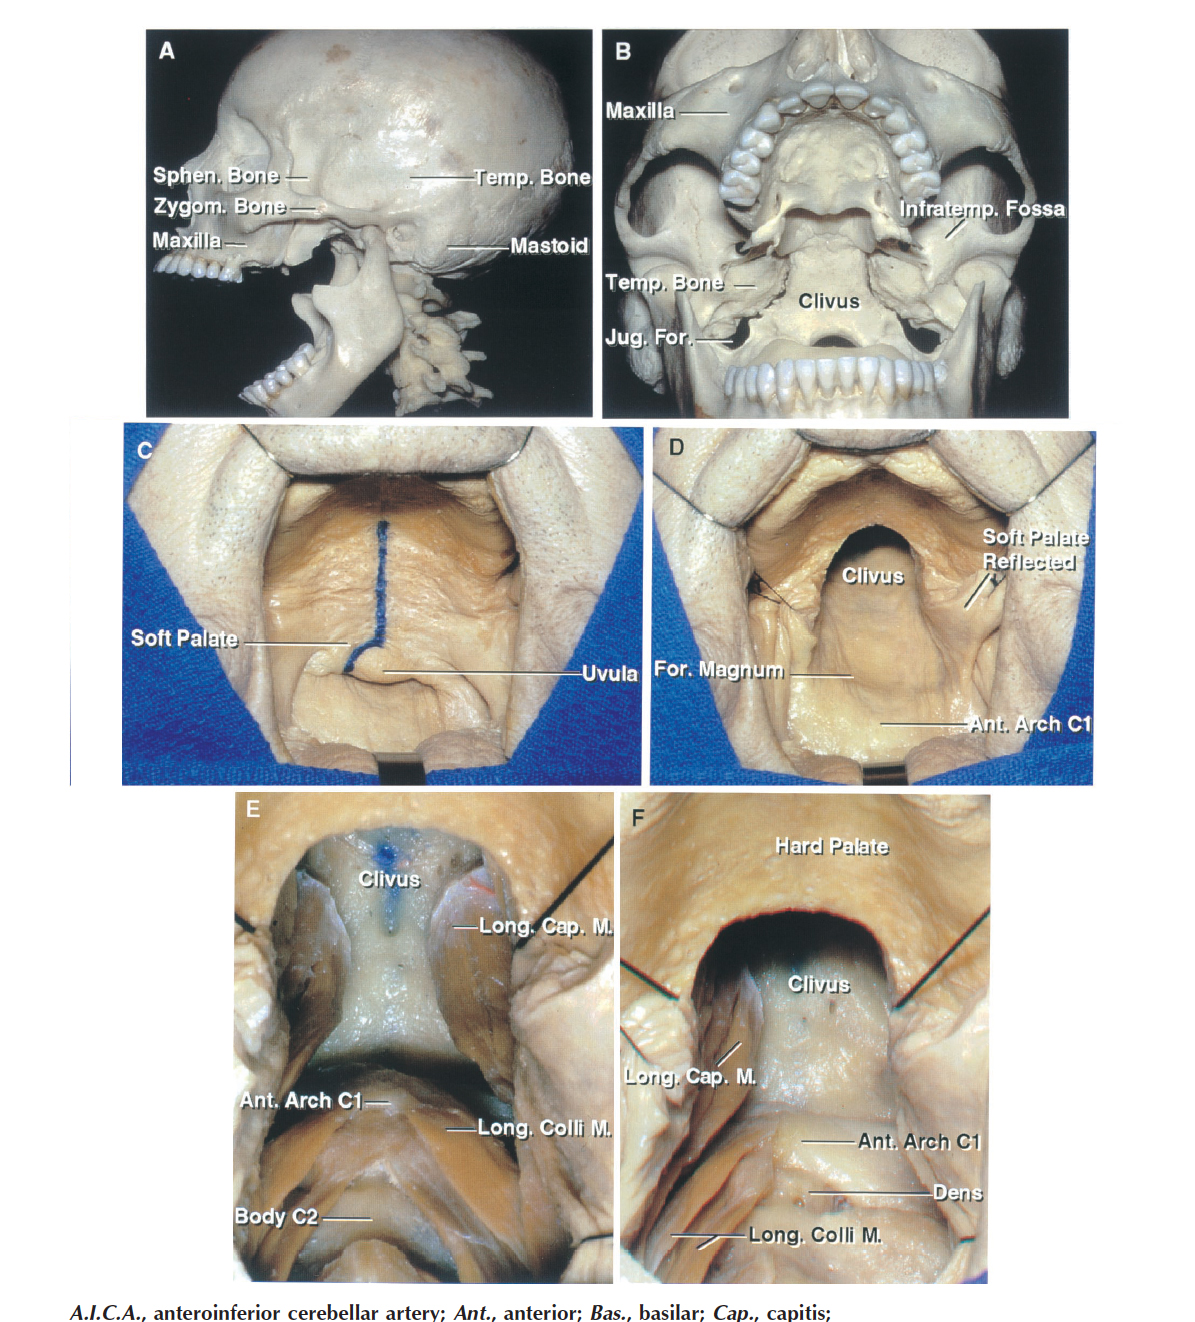 FIGURE 6.12. A–F. Transoral, transpalatal, and transmaxillary approaches to the clivus and foramen magnum. A, forced opening of the mouth permits the clivus to be exposed below the palate. B, anterior view through the open mouth. The soft palate, which extends backward from the hard palate, will block the view of the upper clivus. C, an incision has been outlined in the midline of the soft palate. D, the soft palate has been divided to expose the mucosa lining the lower clivus. E, the pharyngeal mucosa has been opened in the midline and the longus capitis and longus coli have been exposed and the longus capitis reflected laterally. 